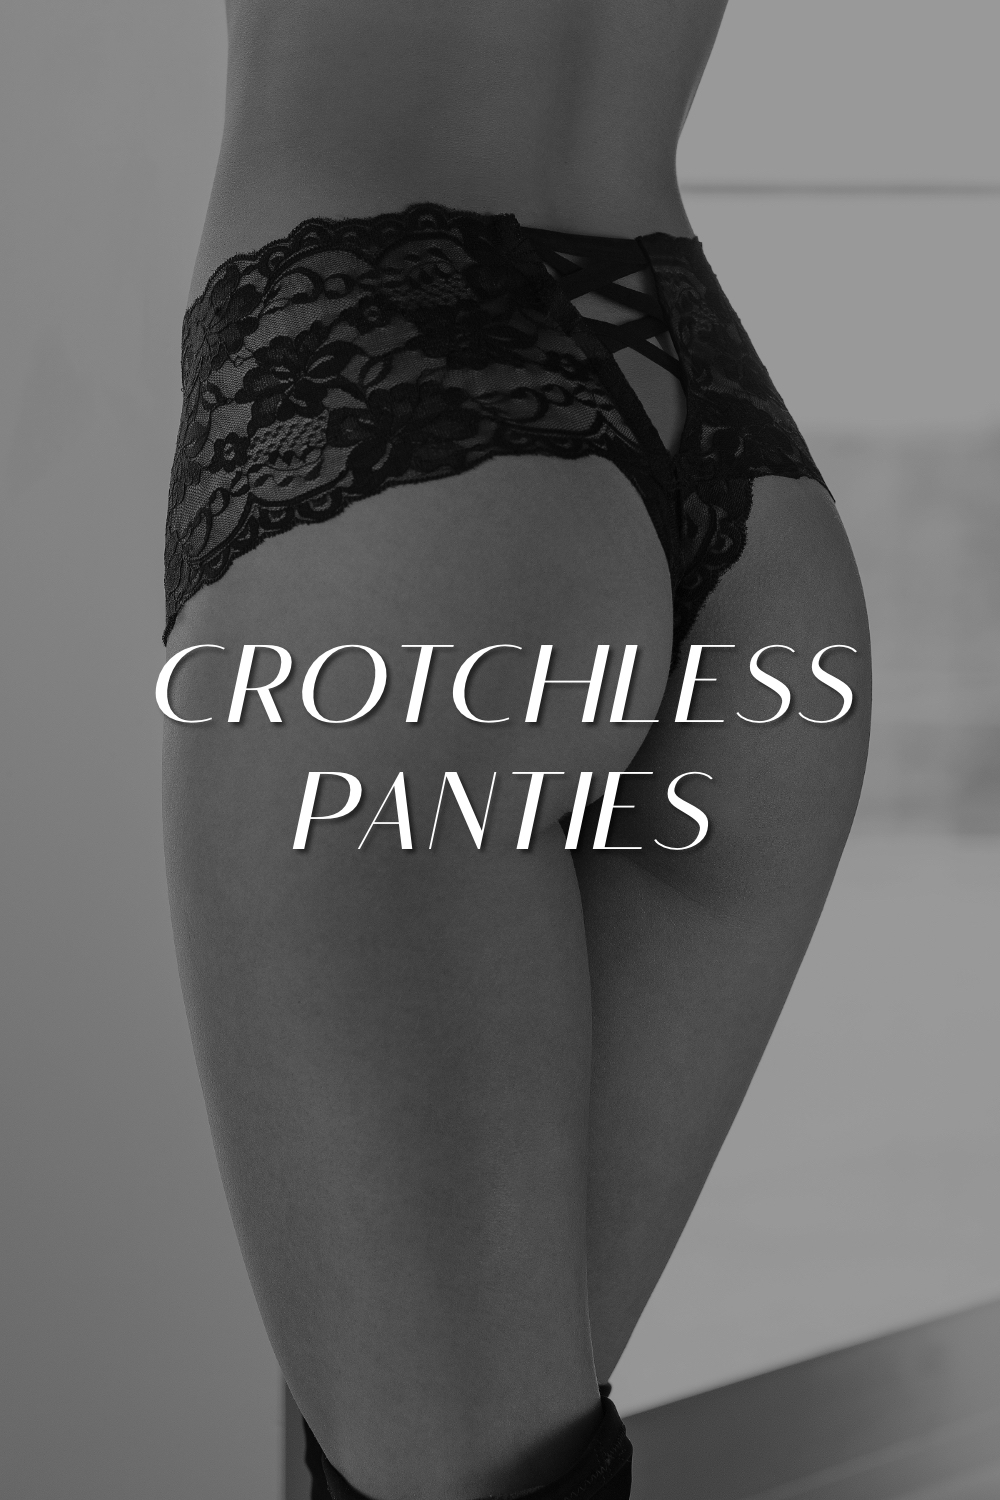 Crotchless Panties Lingerie